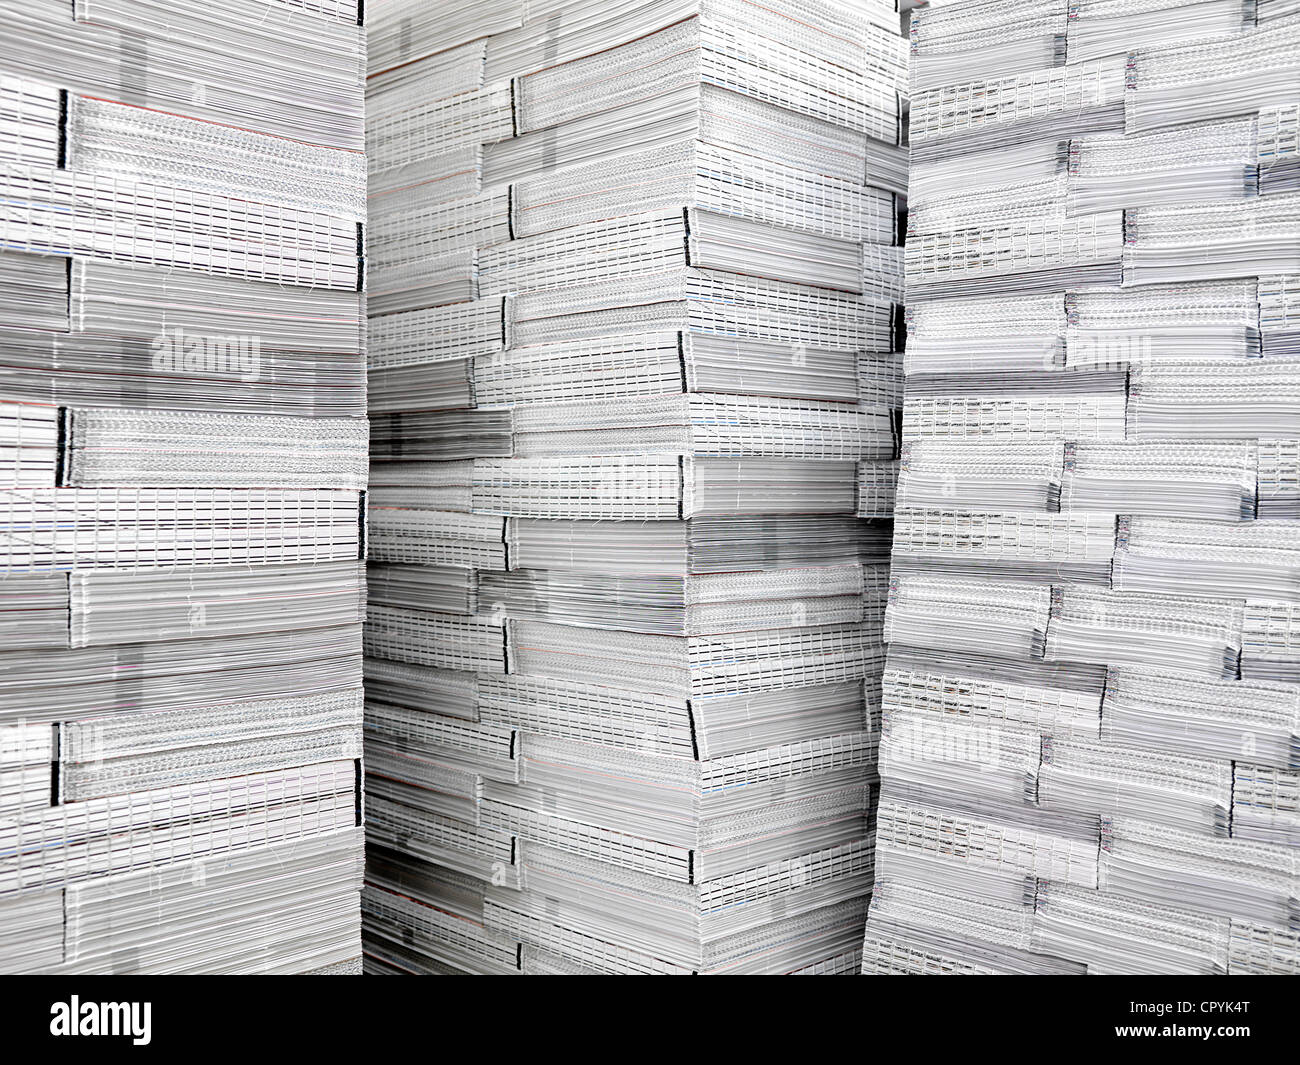 A full scale printing press in Singapore Stock Photo: 48550904 - Alamy